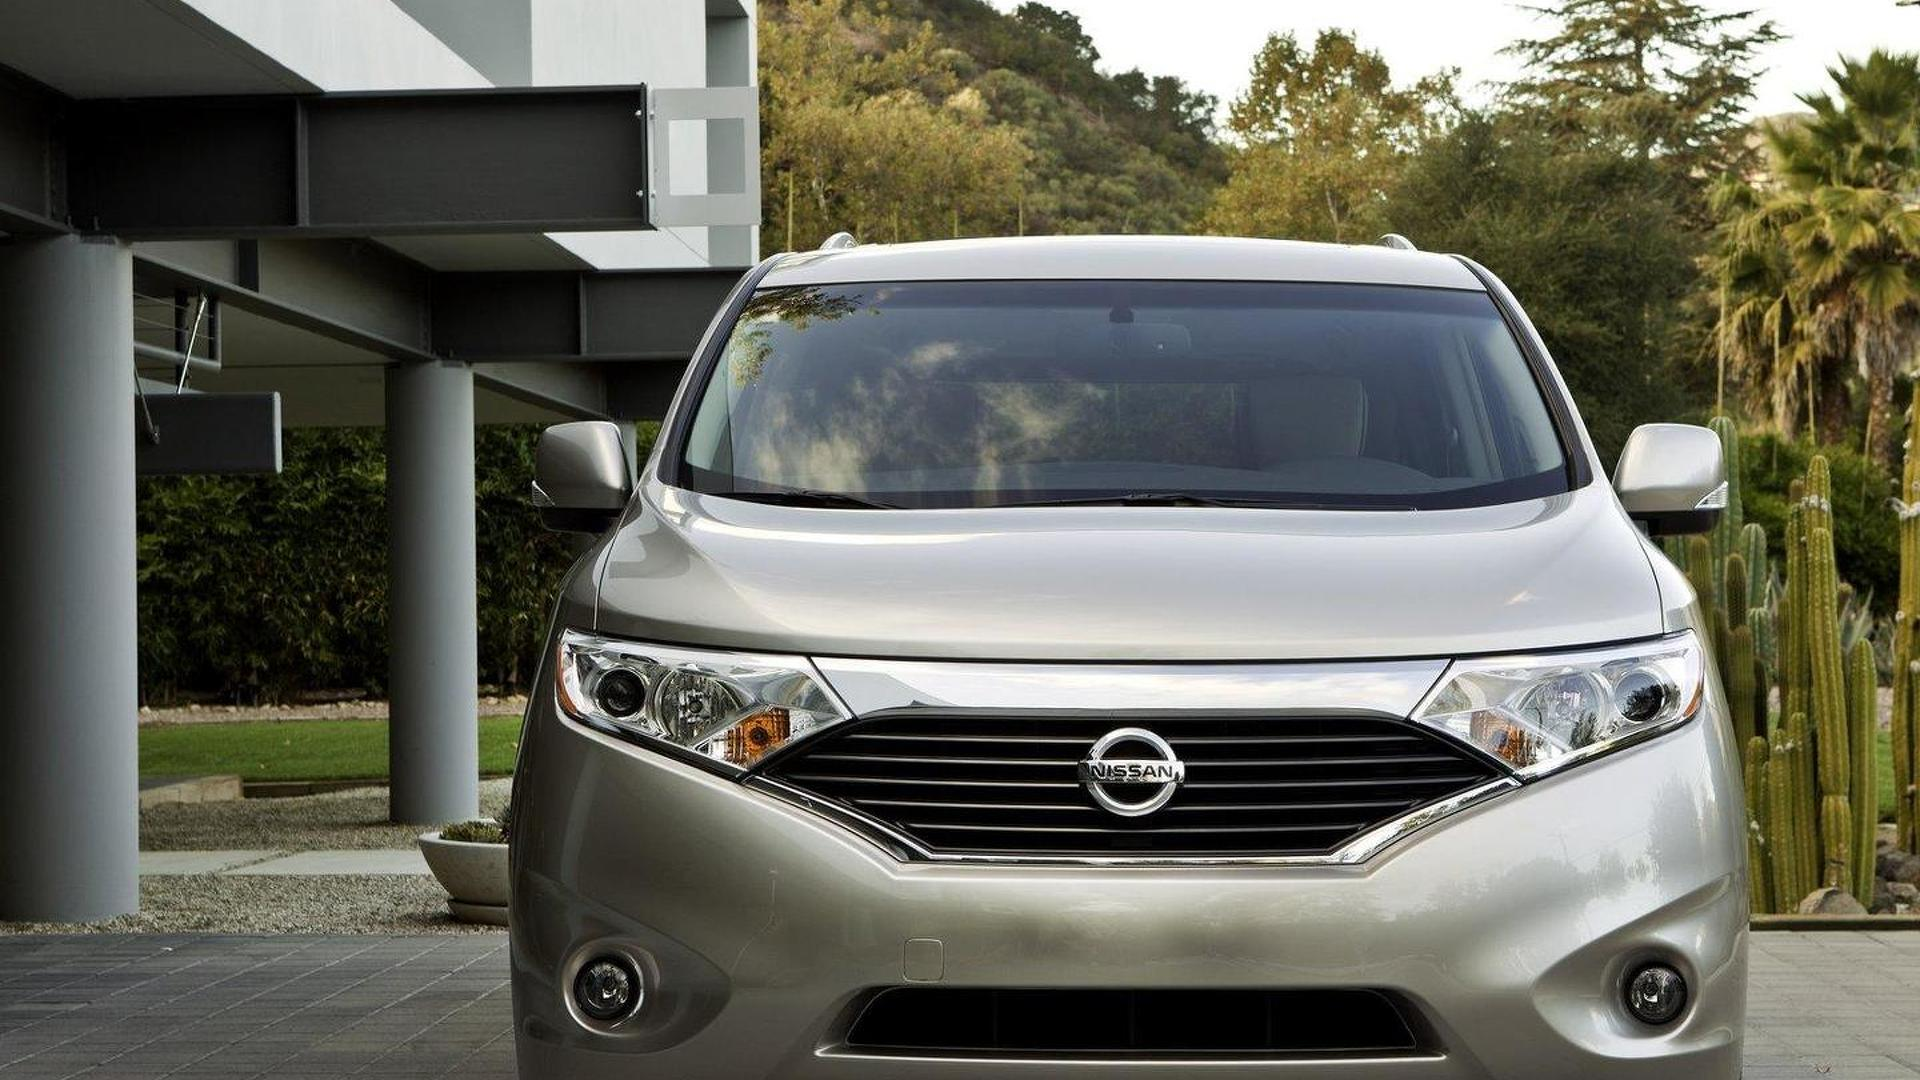 2011 Nissan Quest revealed for North America [video]